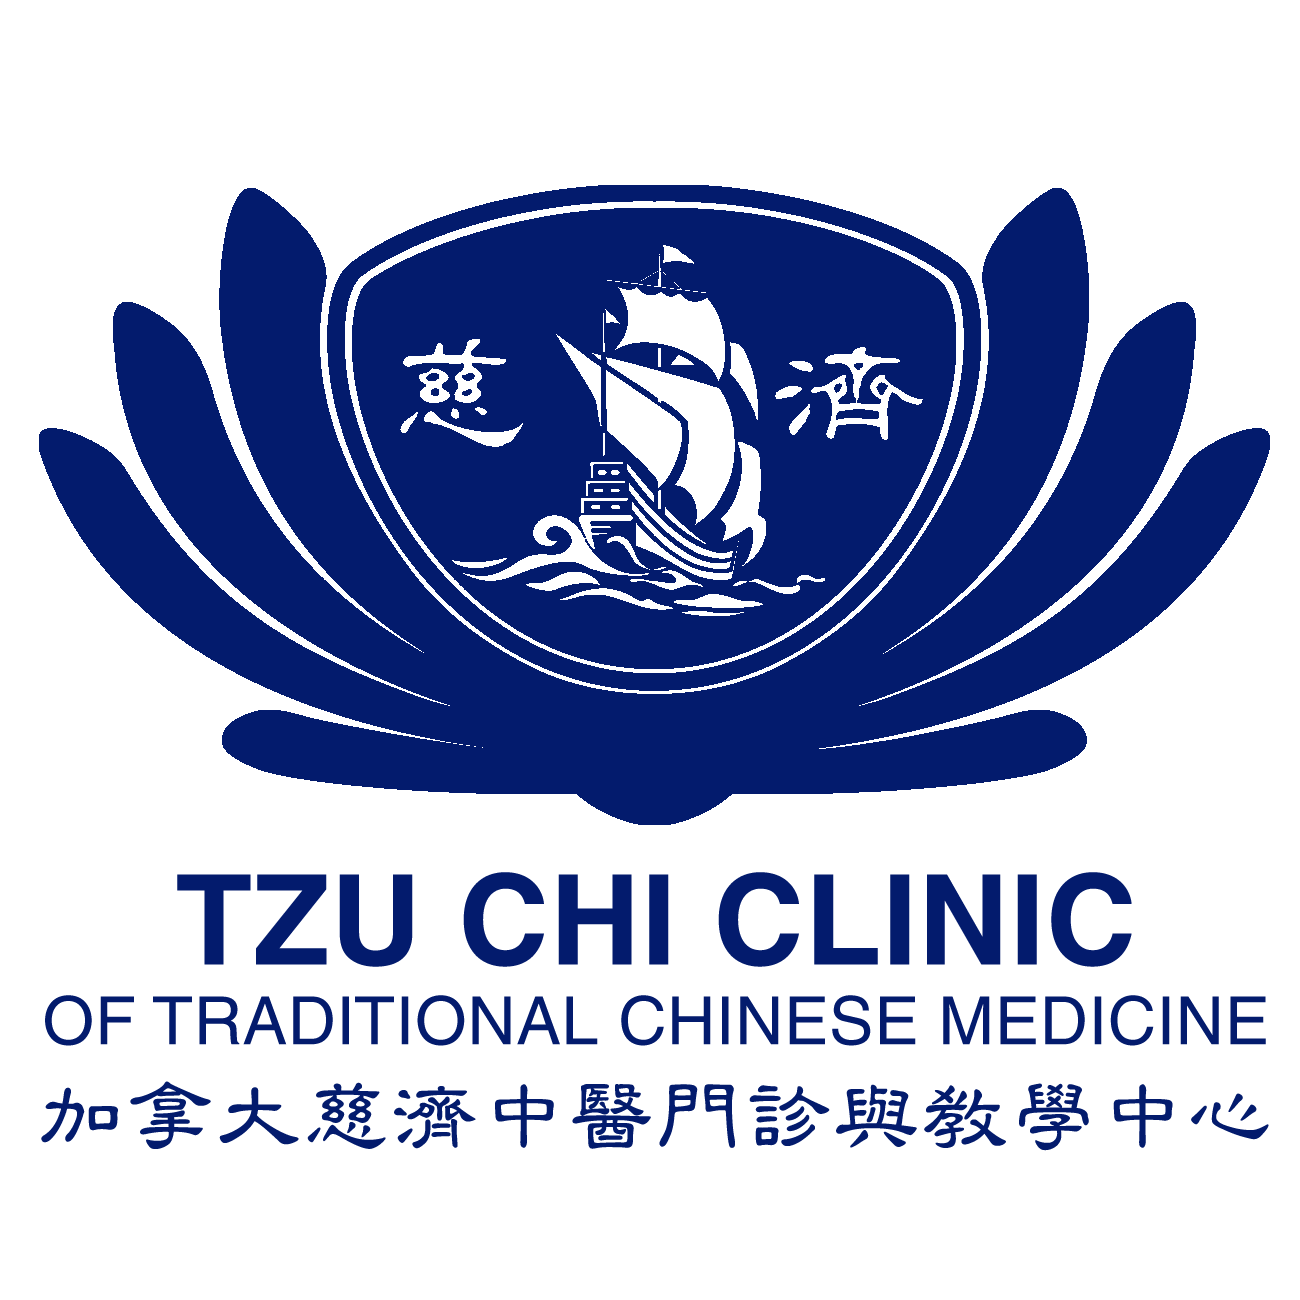 Tzu Chi Clinic of Traditional Chinese Medicine